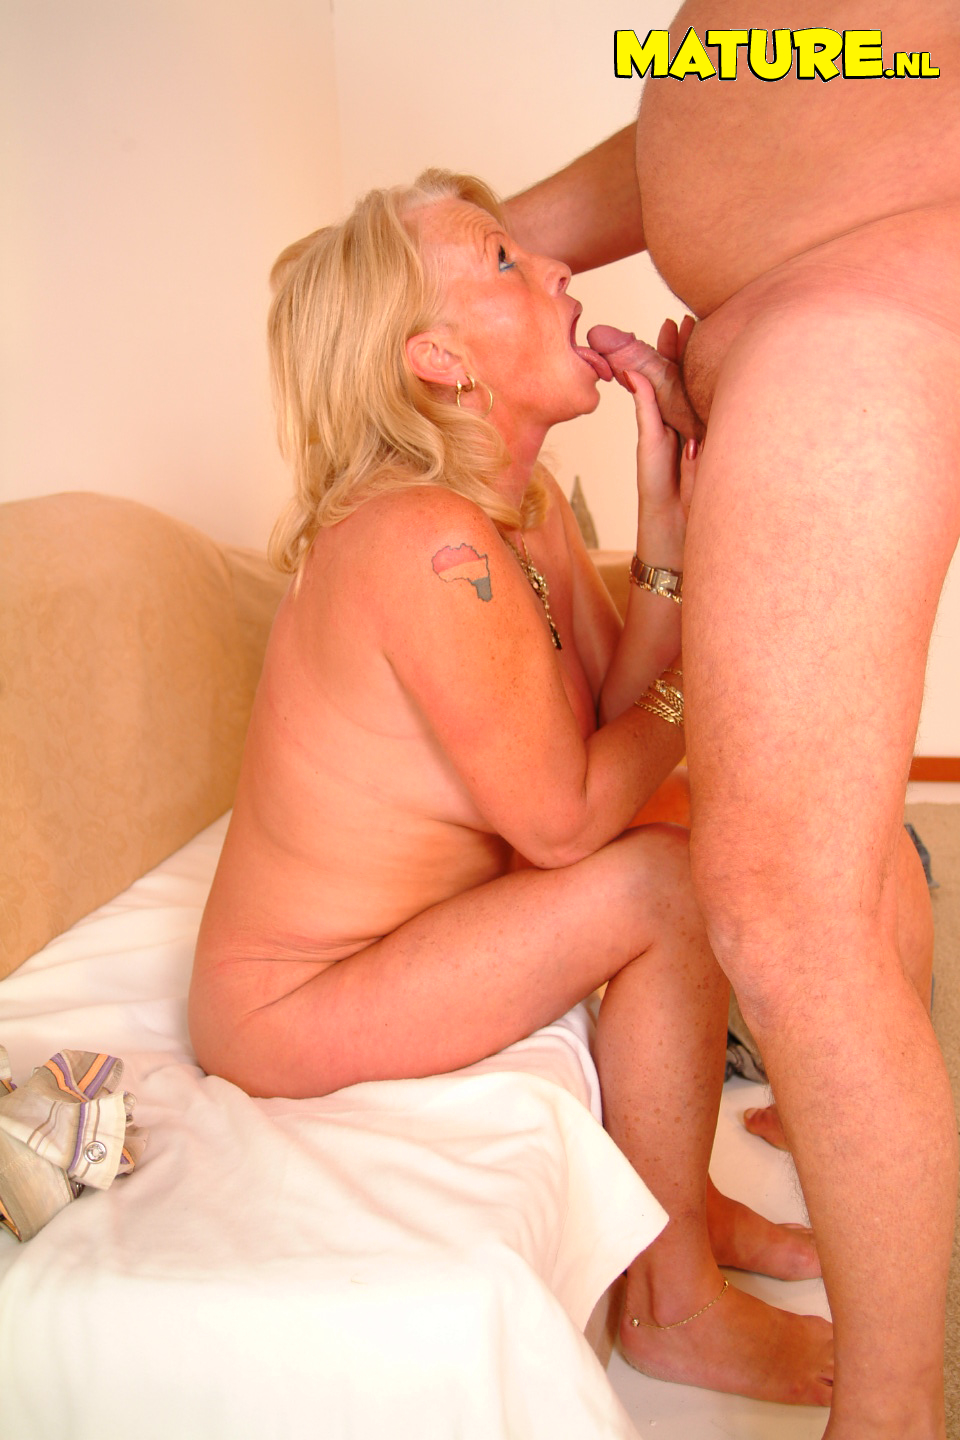 Share older women getting fucked hard